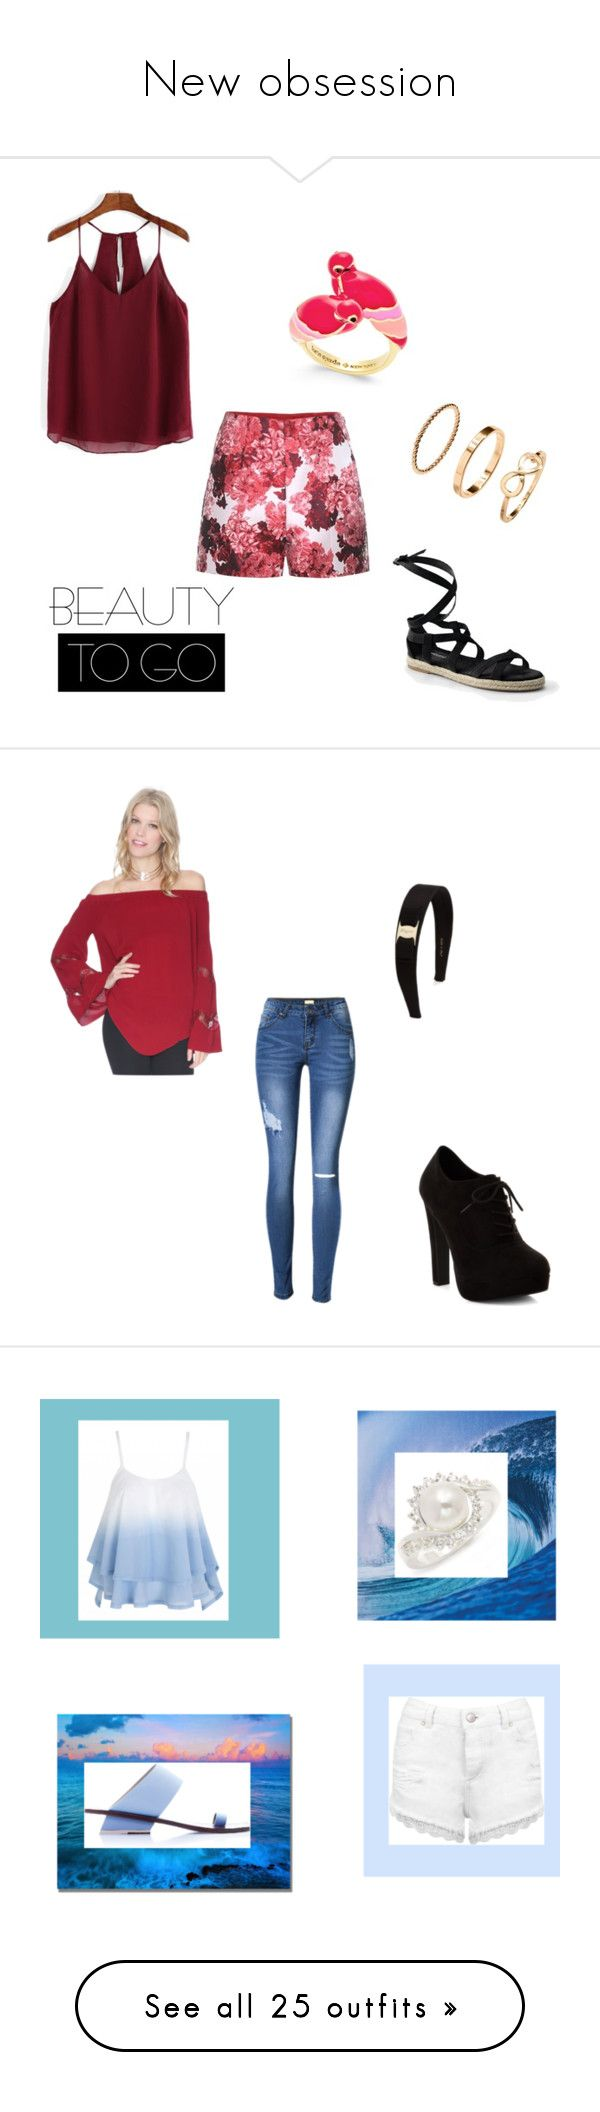 New obsession by mlilsw on Polyvore featuring polyvore, fashion, style, Moncler Gamme Rouge, Canvas by Lands' End, H&M, Kate Spade, clothing, New Look, Grayson, Salvatore Ferragamo, Miss Selfridge, Abcense, New Directions, Sans Souci, Converse, Vera Bradley, Casetify, Charlotte Russe, Boohoo, Citizens of Humanity, Journee Collection, AG Adriano Goldschmied, Timberland, LE3NO, Puma, Givenchy, Vince, RVCA, Billabong, Agent 18, JustFab, Tammy & Benjamin, Jimmy Choo, Tory Burch, Bobbi Brown…